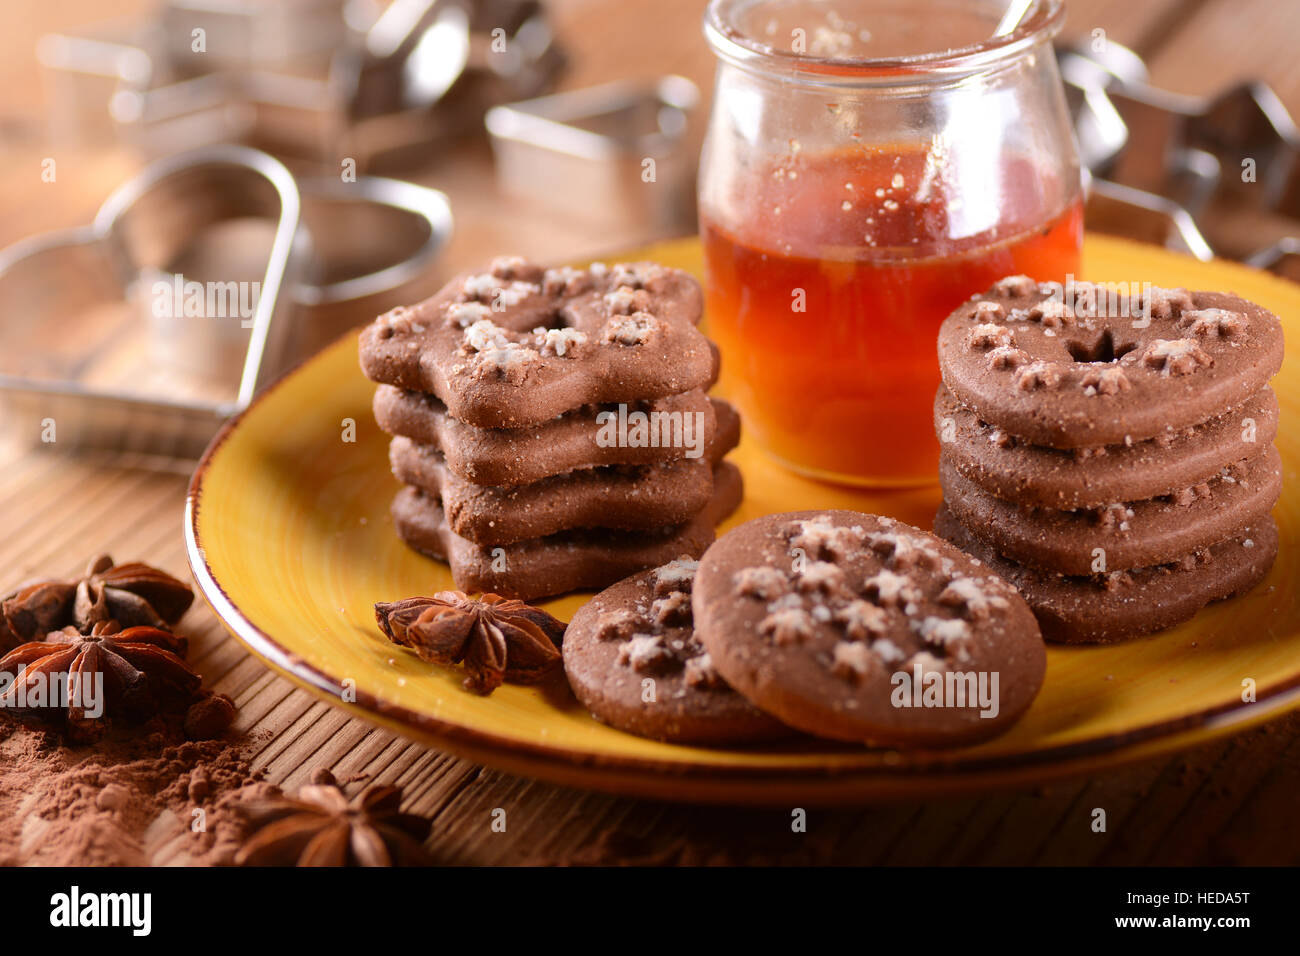 cookies pile stockfotos cookies pile bilder alamy. Black Bedroom Furniture Sets. Home Design Ideas